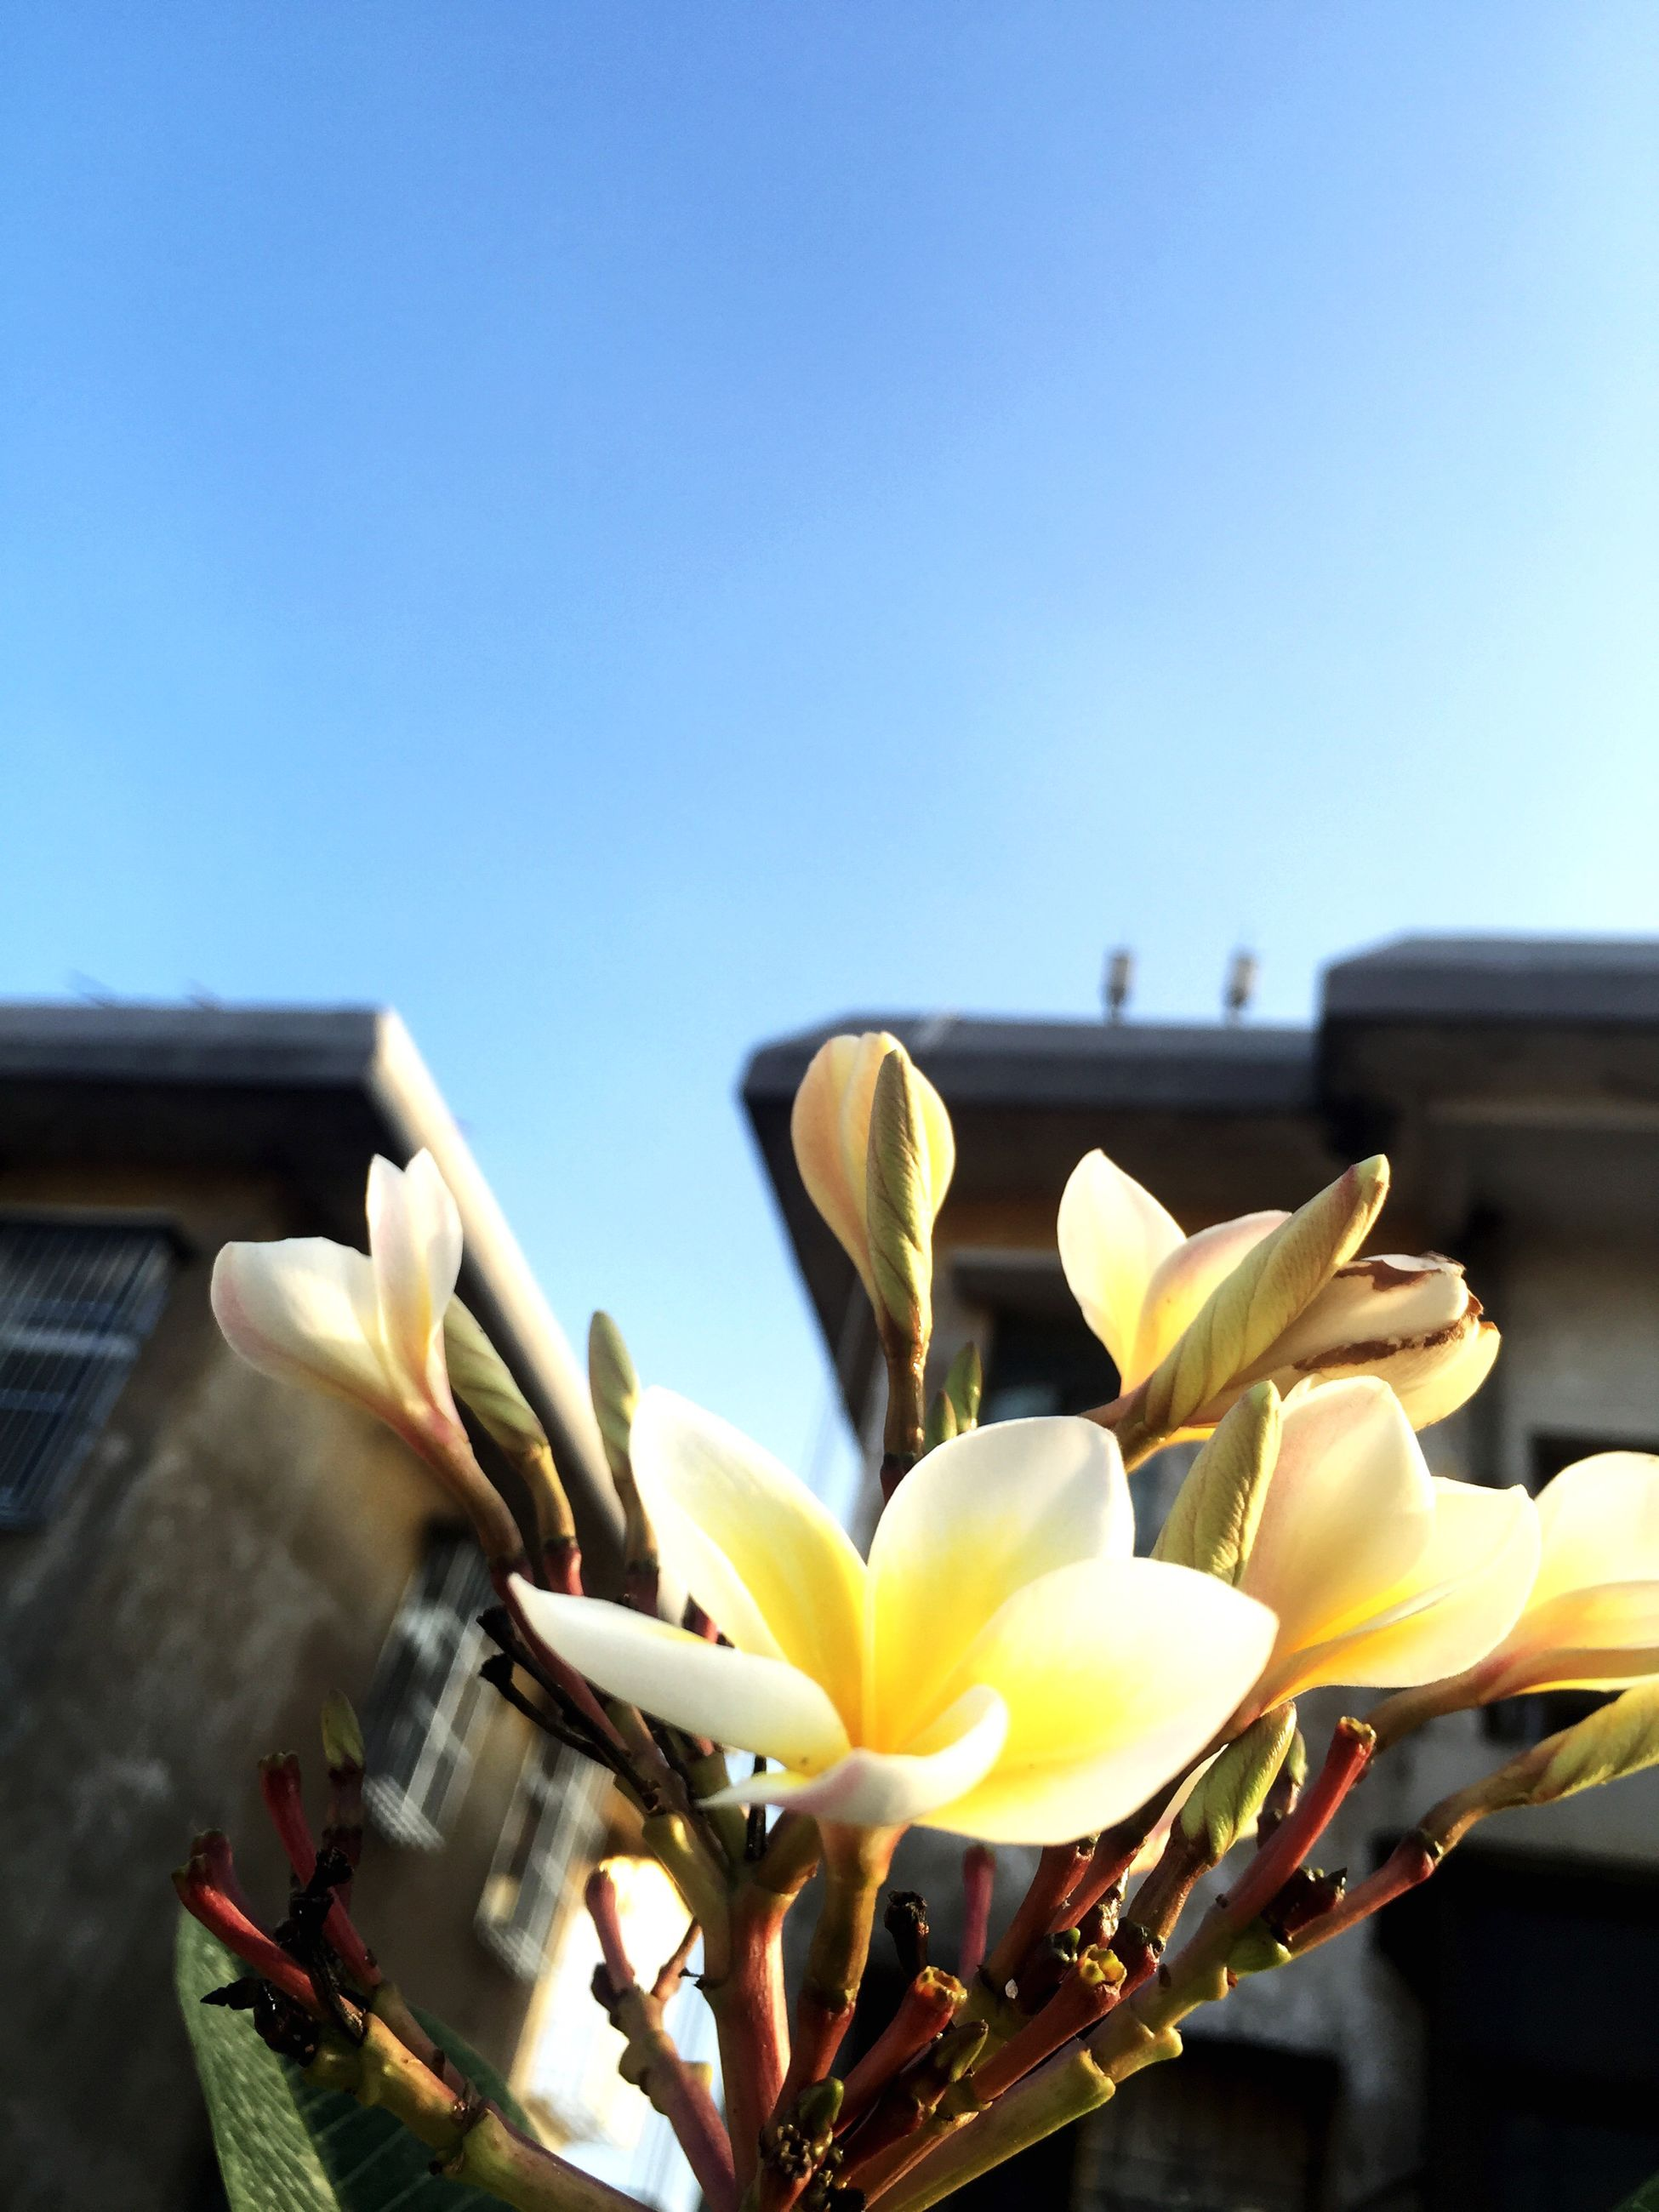 clear sky, copy space, blue, focus on foreground, building exterior, close-up, built structure, architecture, no people, part of, day, transportation, outdoors, cropped, sky, mode of transport, sunlight, metal, nature, flower